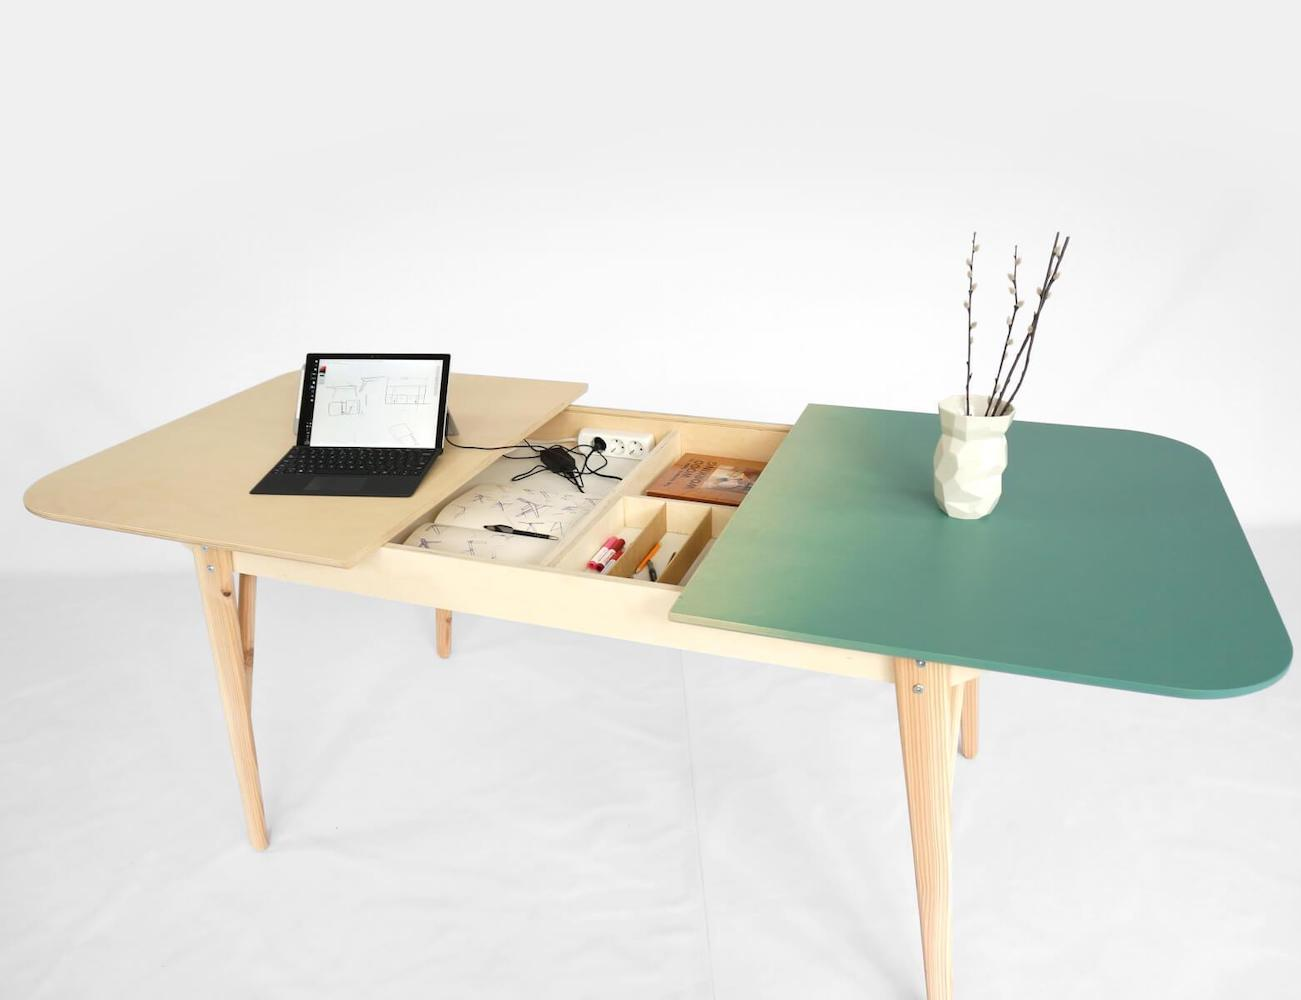 Tableworks Hybrid Table Desk transitions from work to mealtime